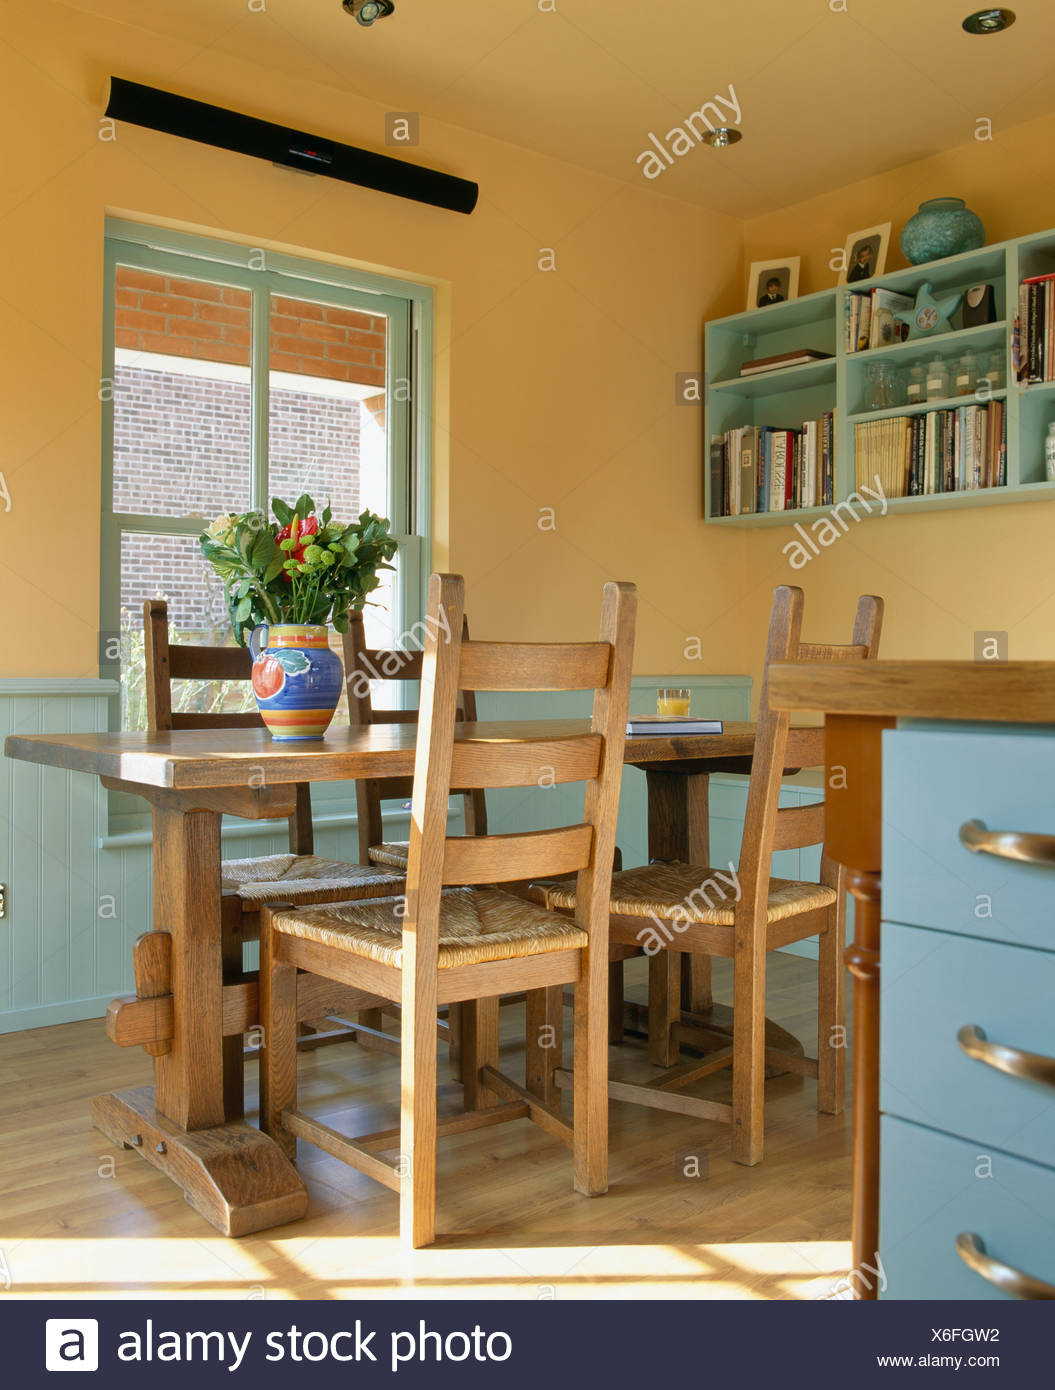 Wooden table chairs in yellow country kitchen with blue dado ...